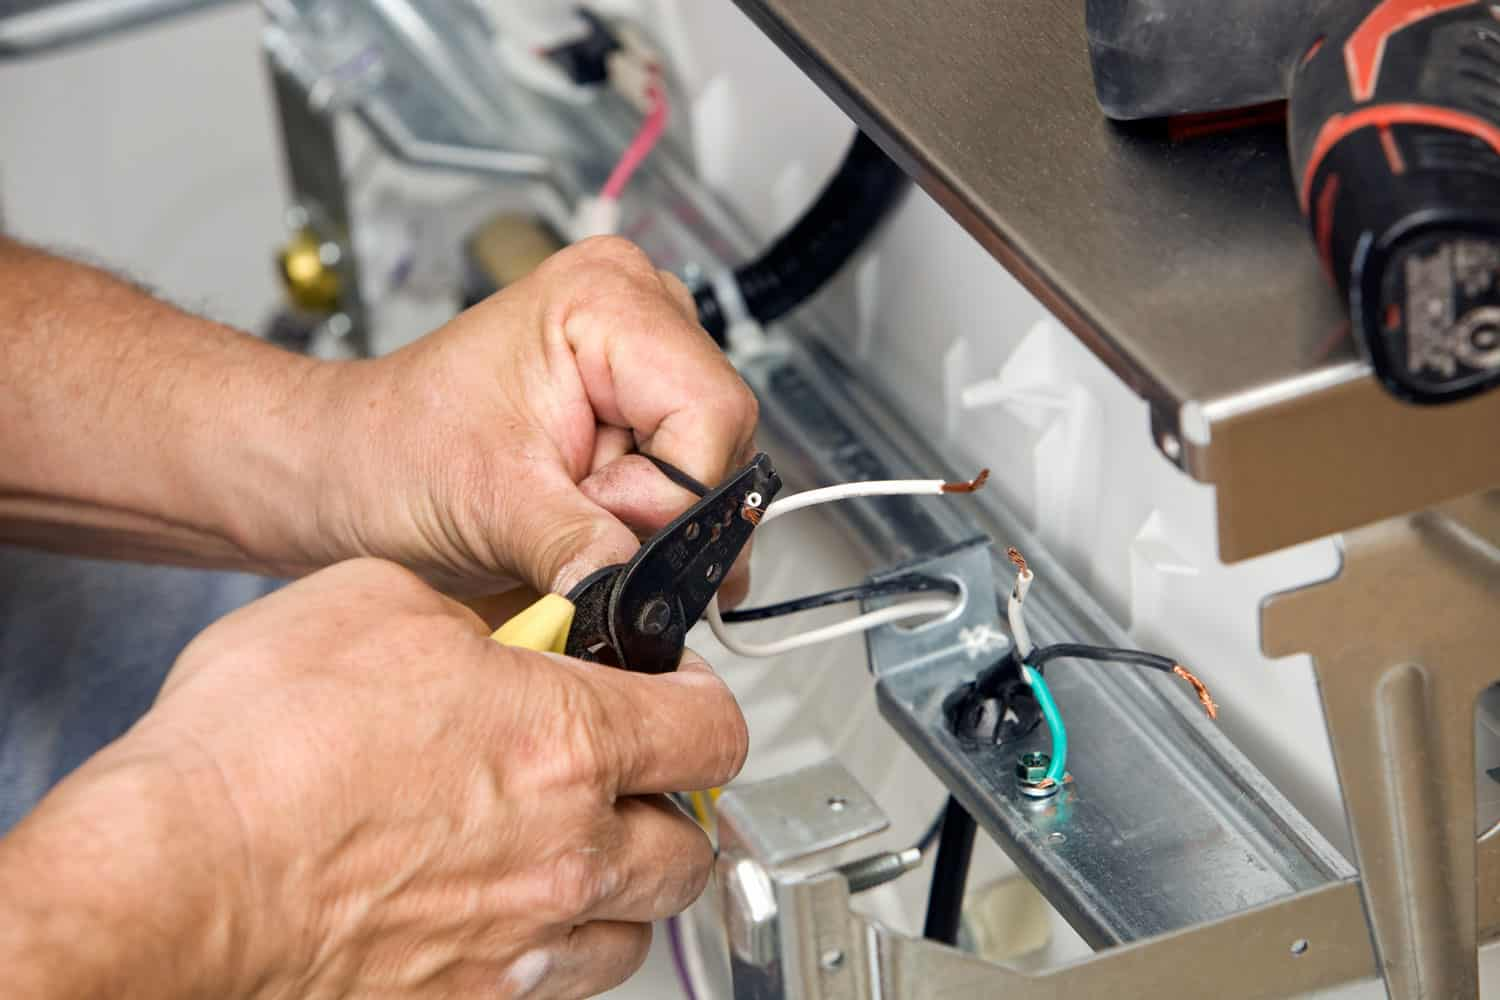 Electrician Strips Wires for a Dishwasher Installation